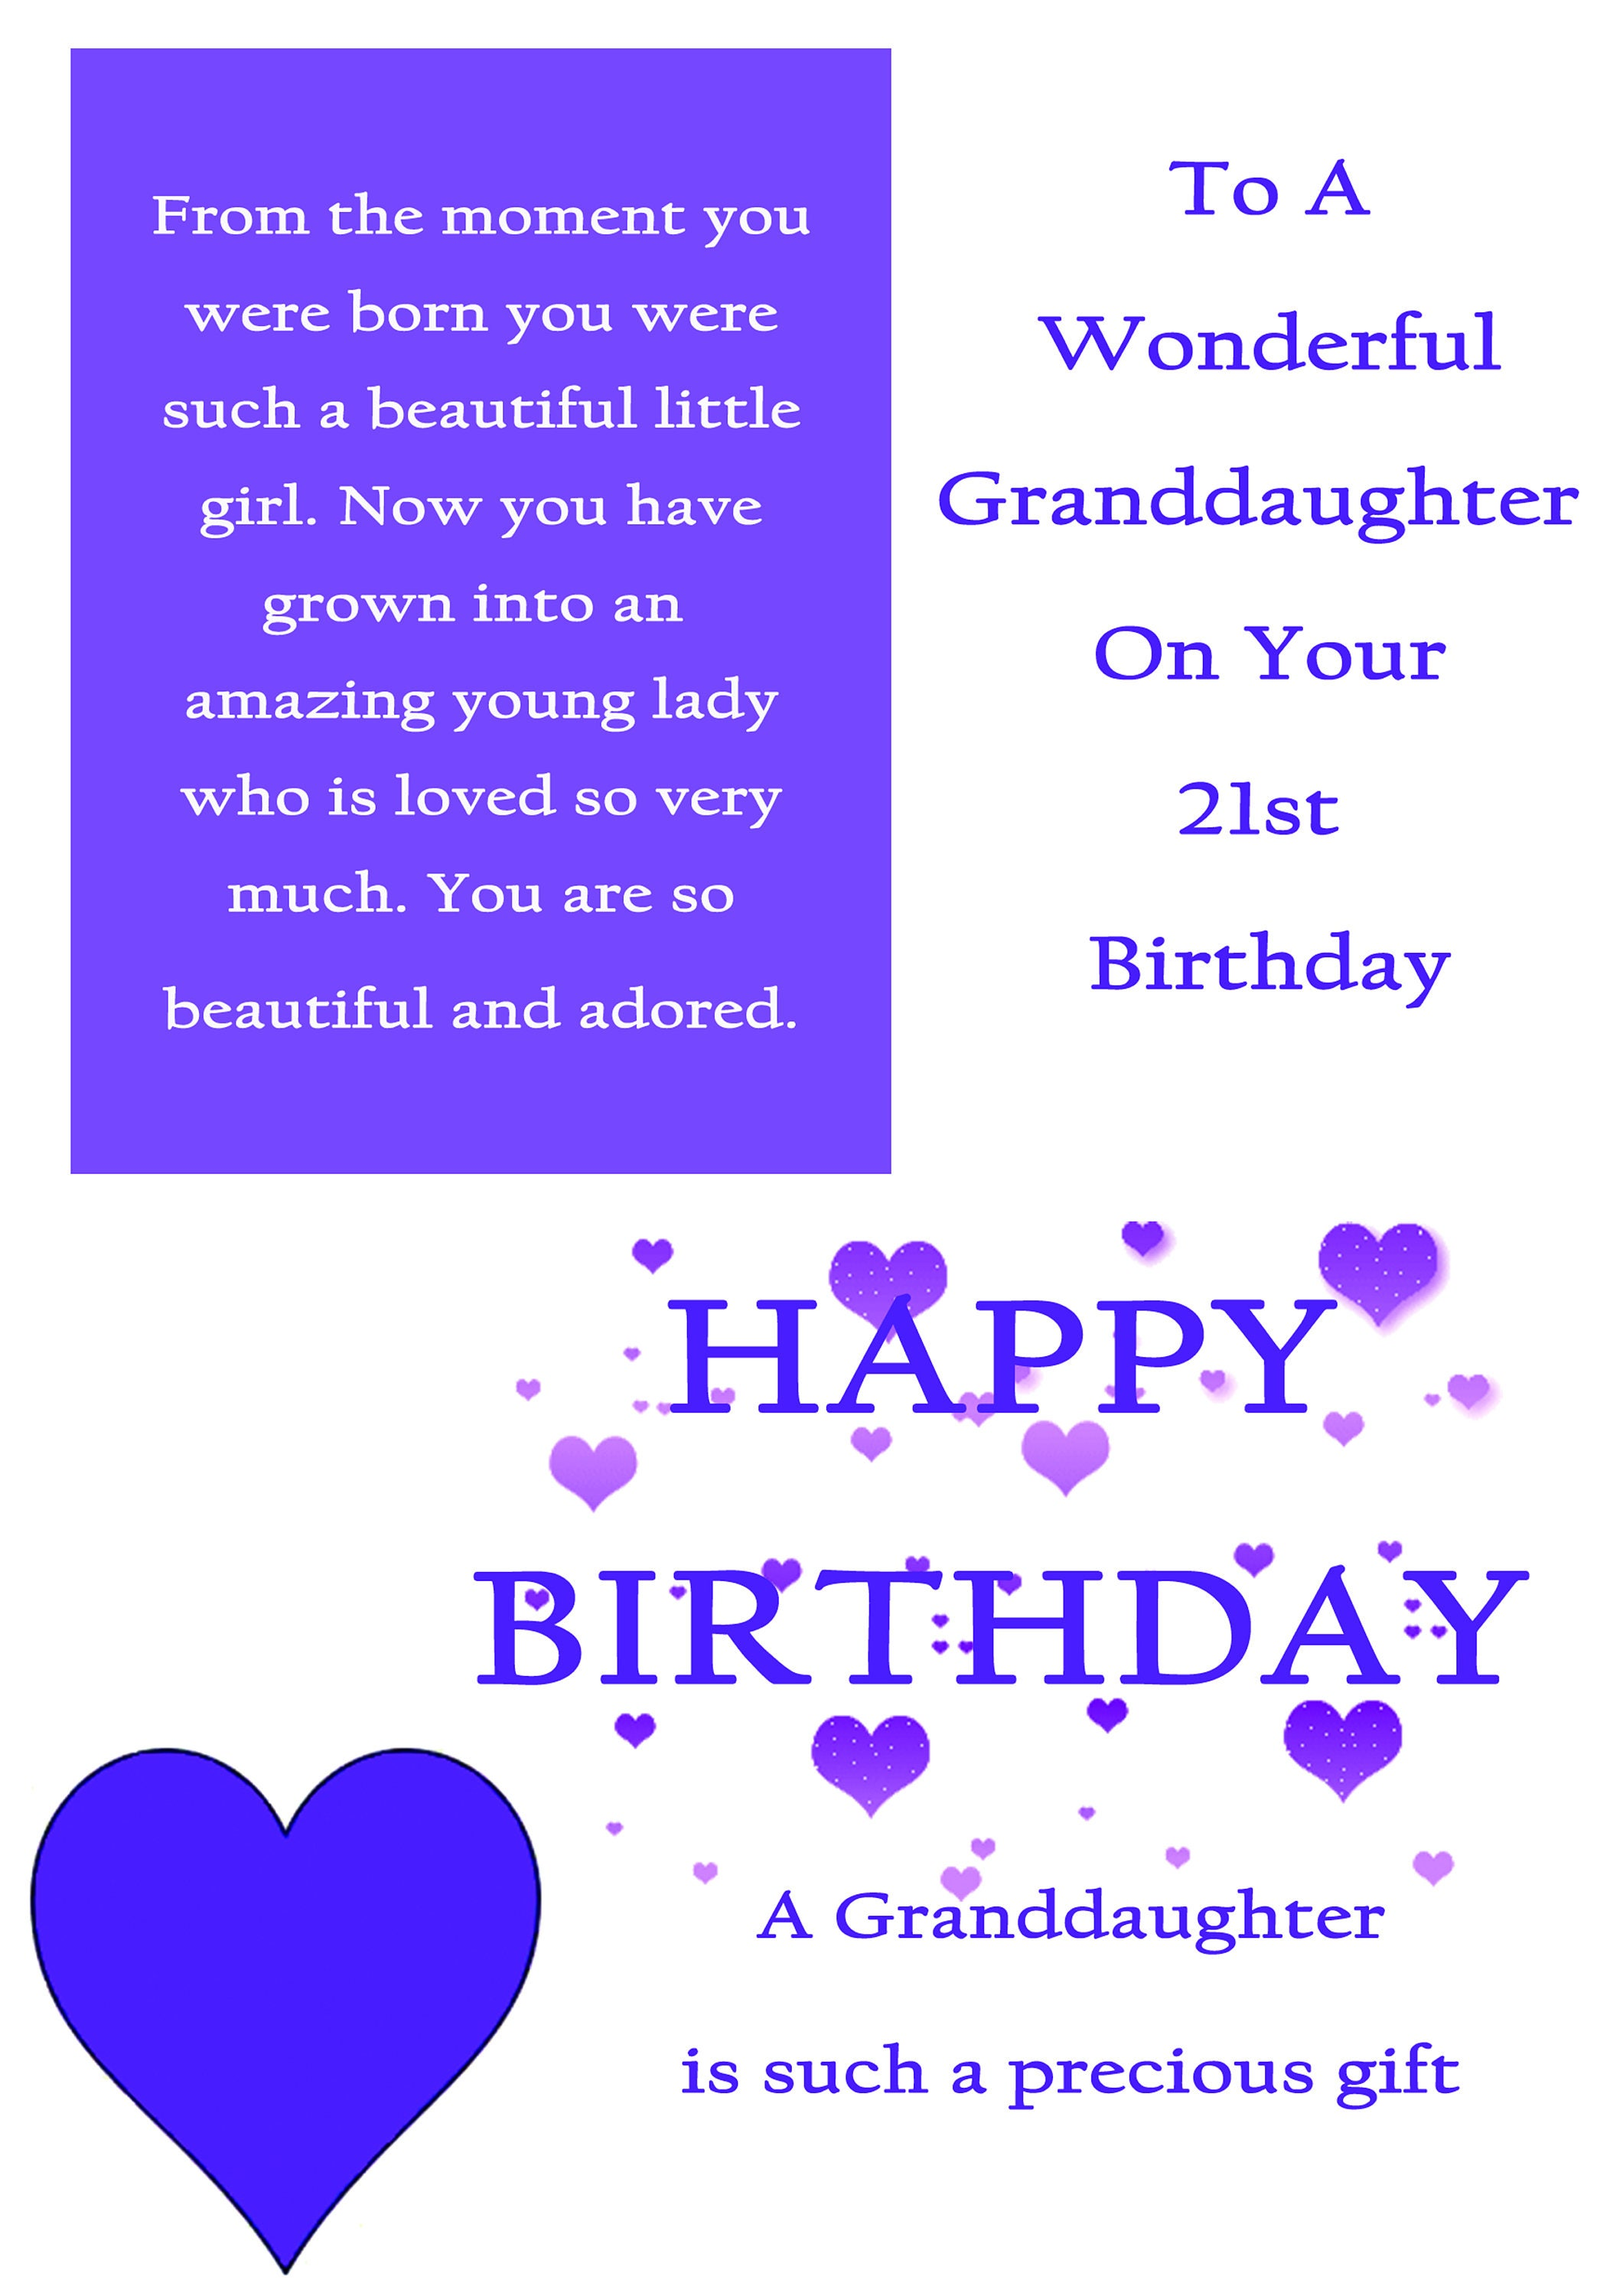 Granddaughter 21 Birthday Card With Removable Laminate